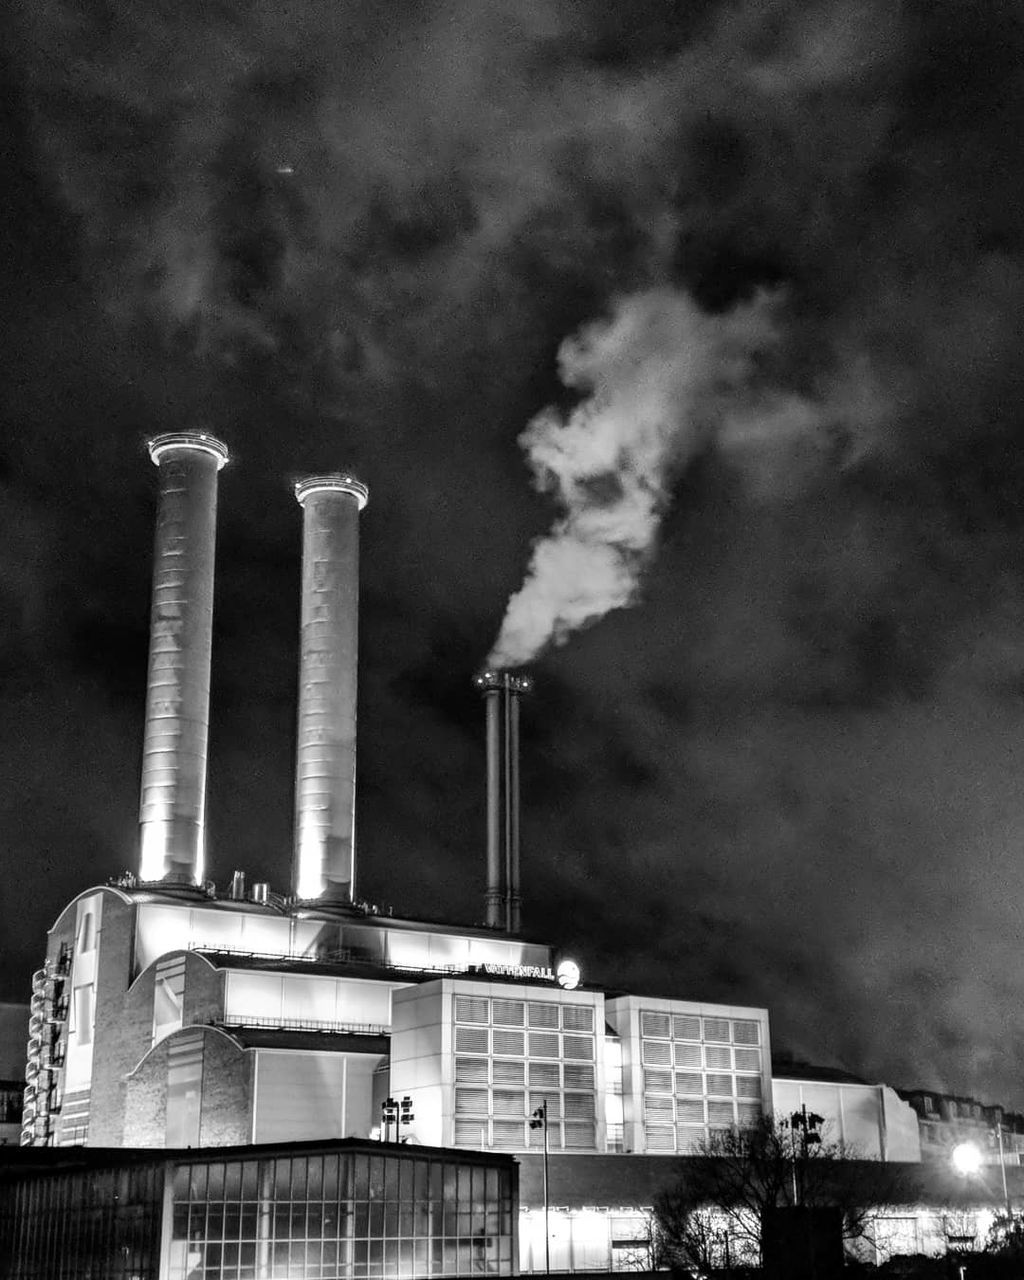 smoke - physical structure, industry, factory, smoke stack, pollution, emitting, air pollution, chimney, built structure, fumes, environment, no people, architecture, sky, outdoors, building exterior, day